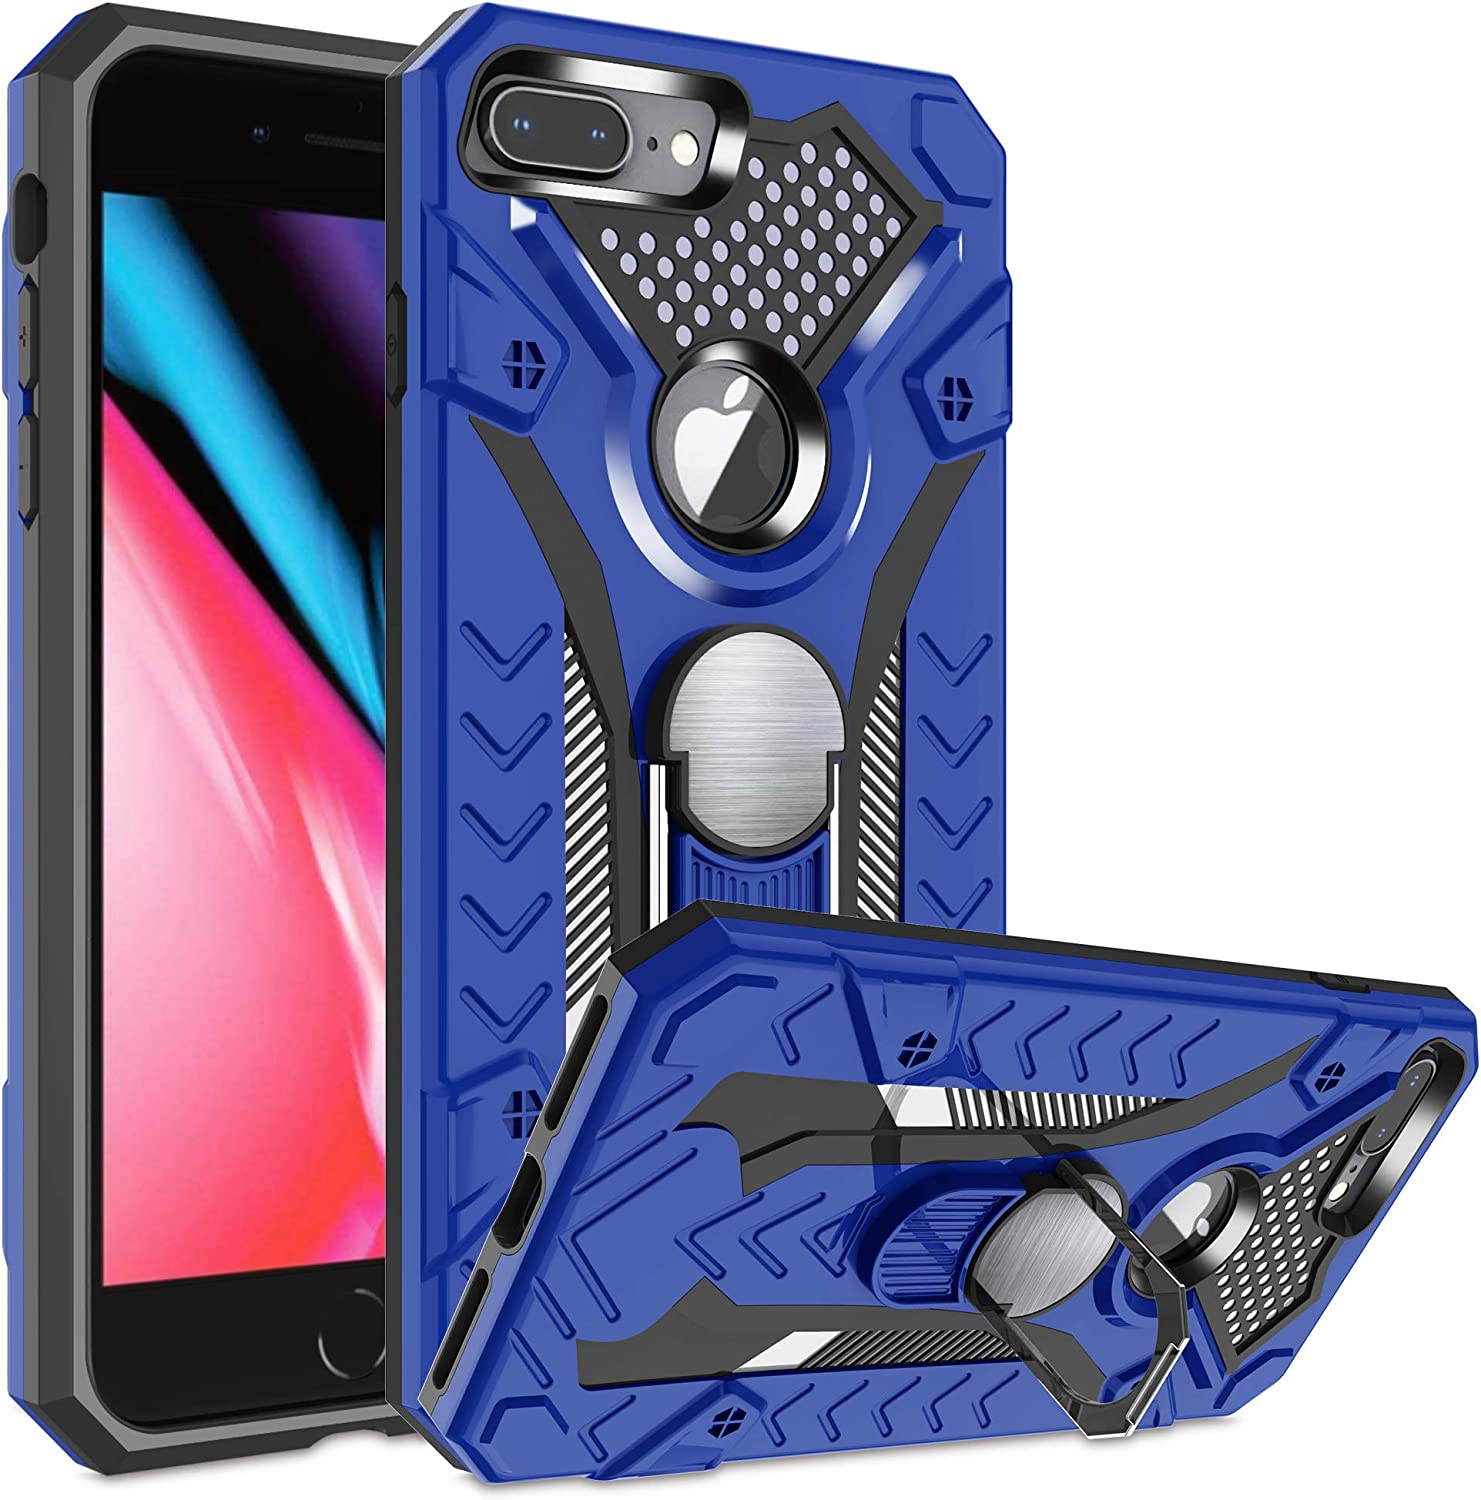 iPhone 7 Plus case | iPhone 8 Plus case | Metal 360 Degree Ring Kickstand| Atump Military Grade 15ft. Drop Shockproof Tested Protective case | Car Mount Phone case for iPhone 7 Plus Blue